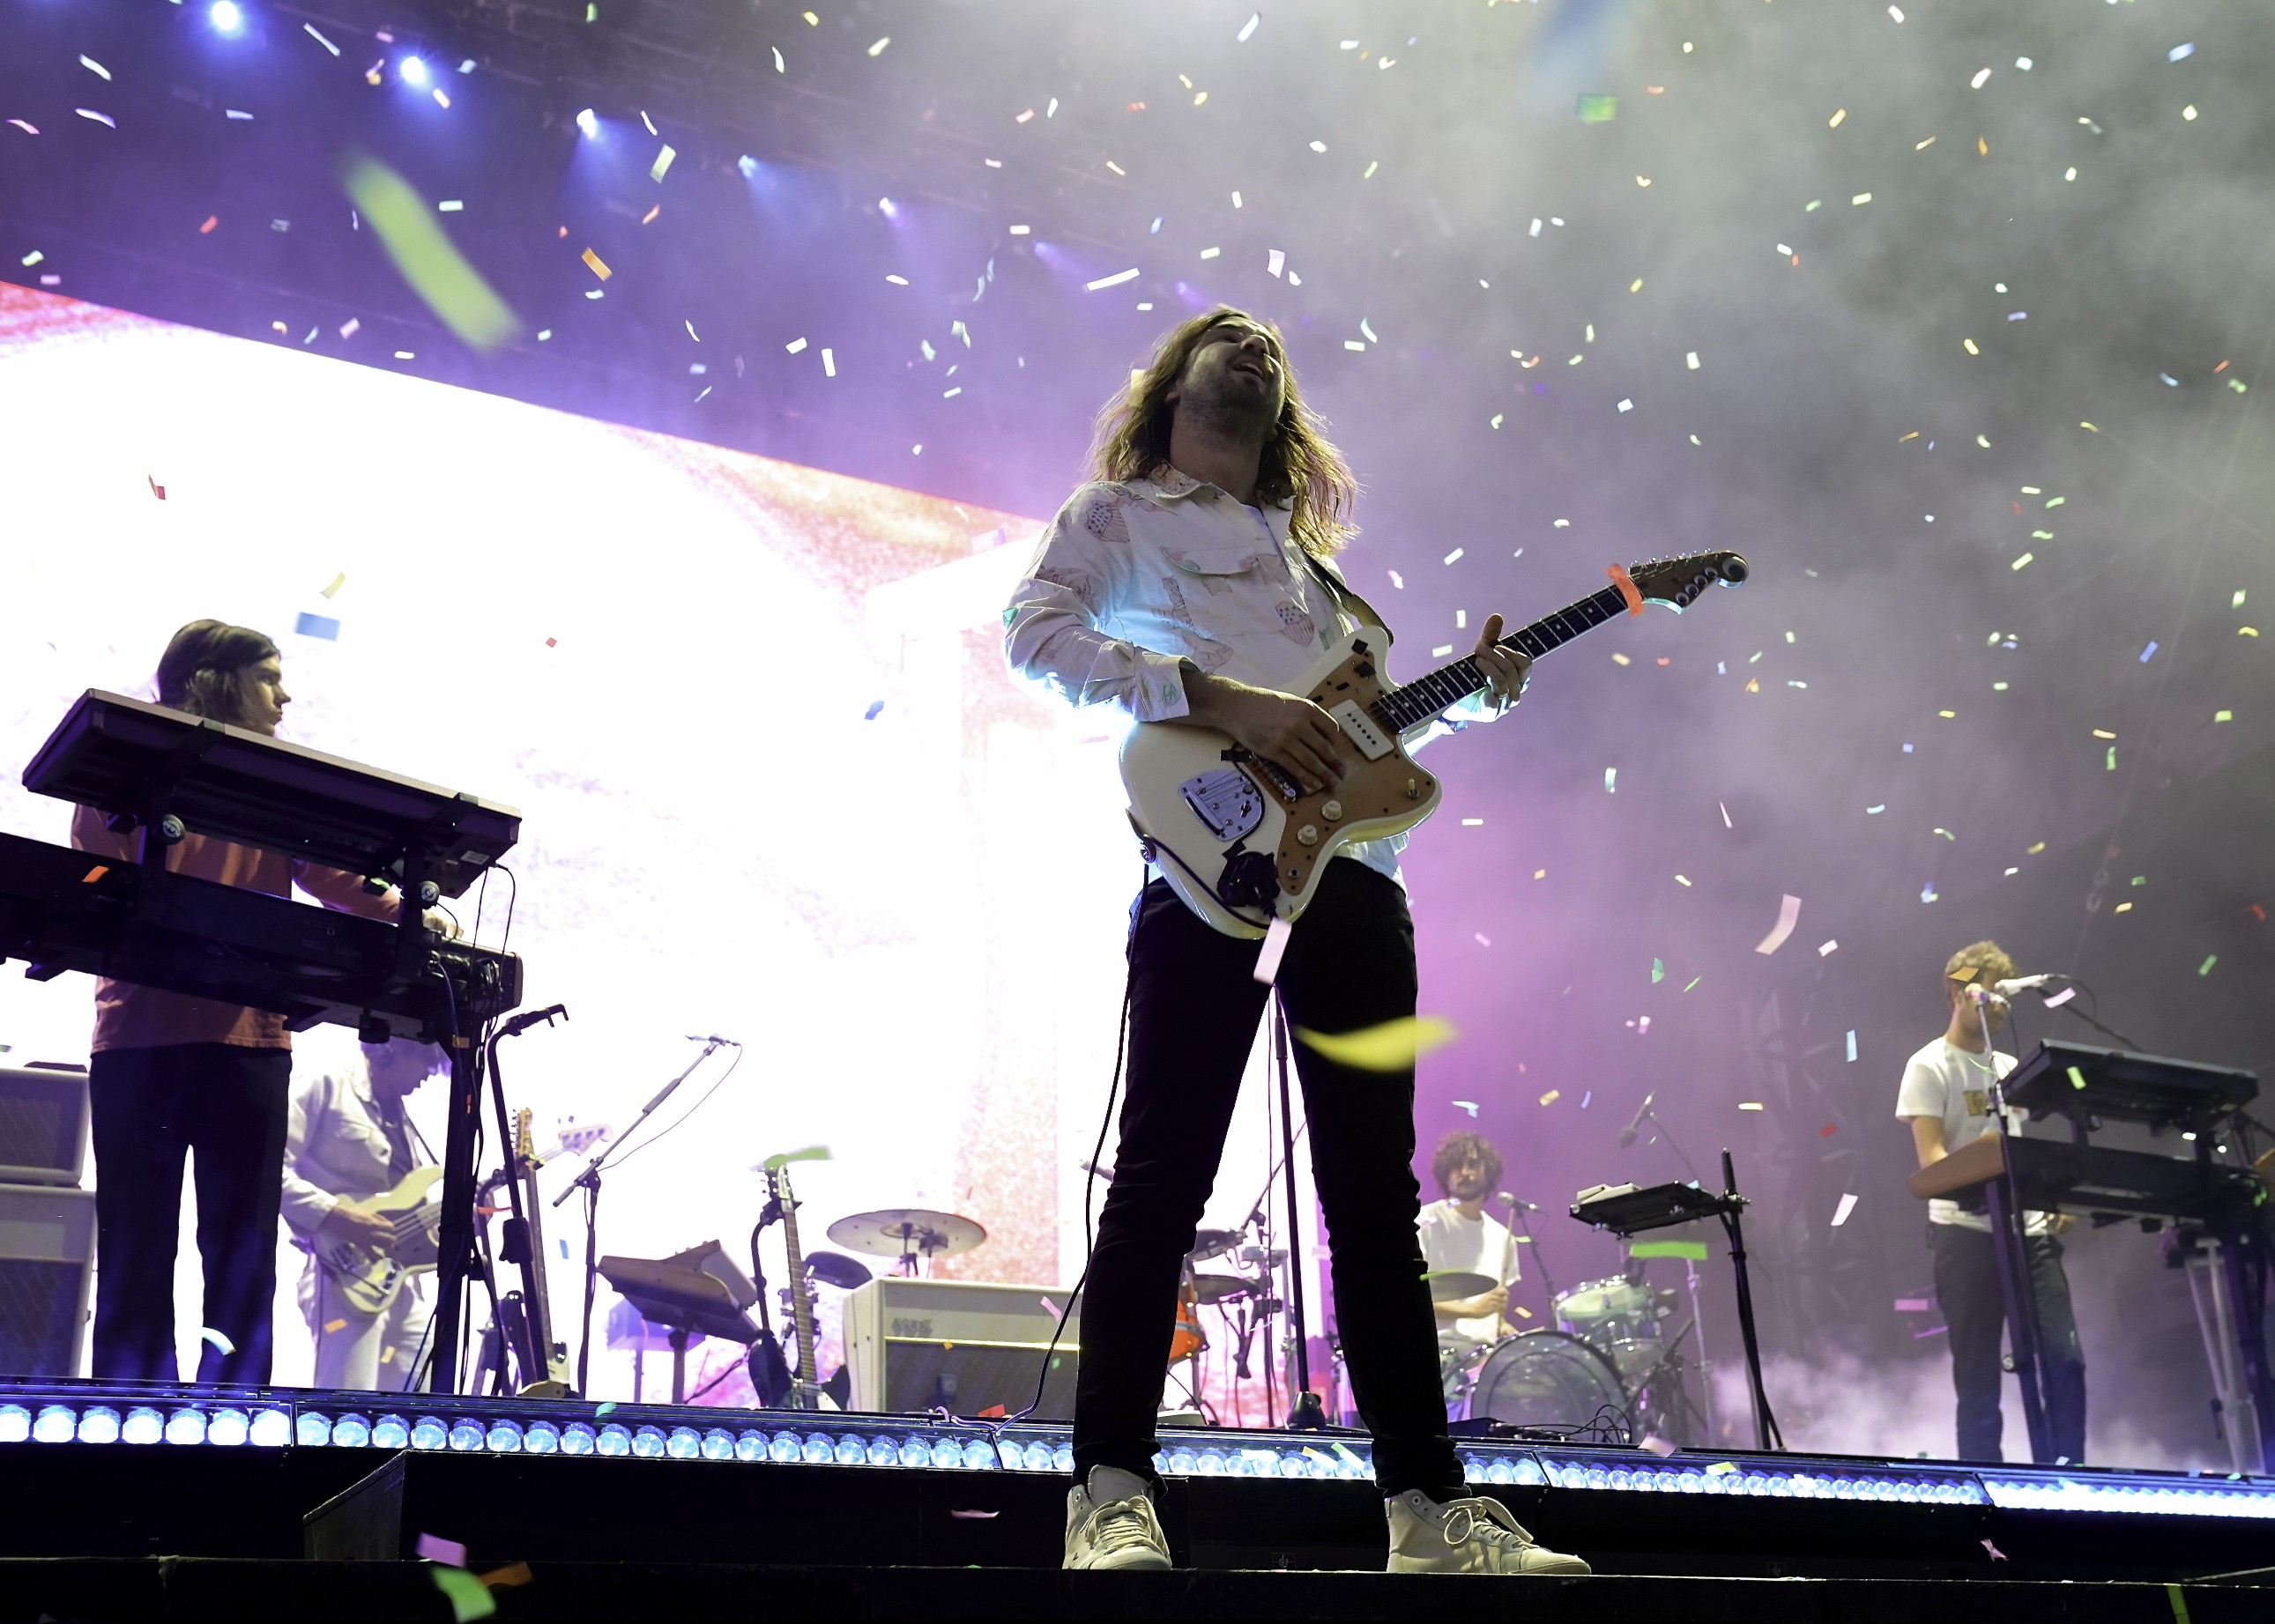 Tame Impala photo by Perry Julien